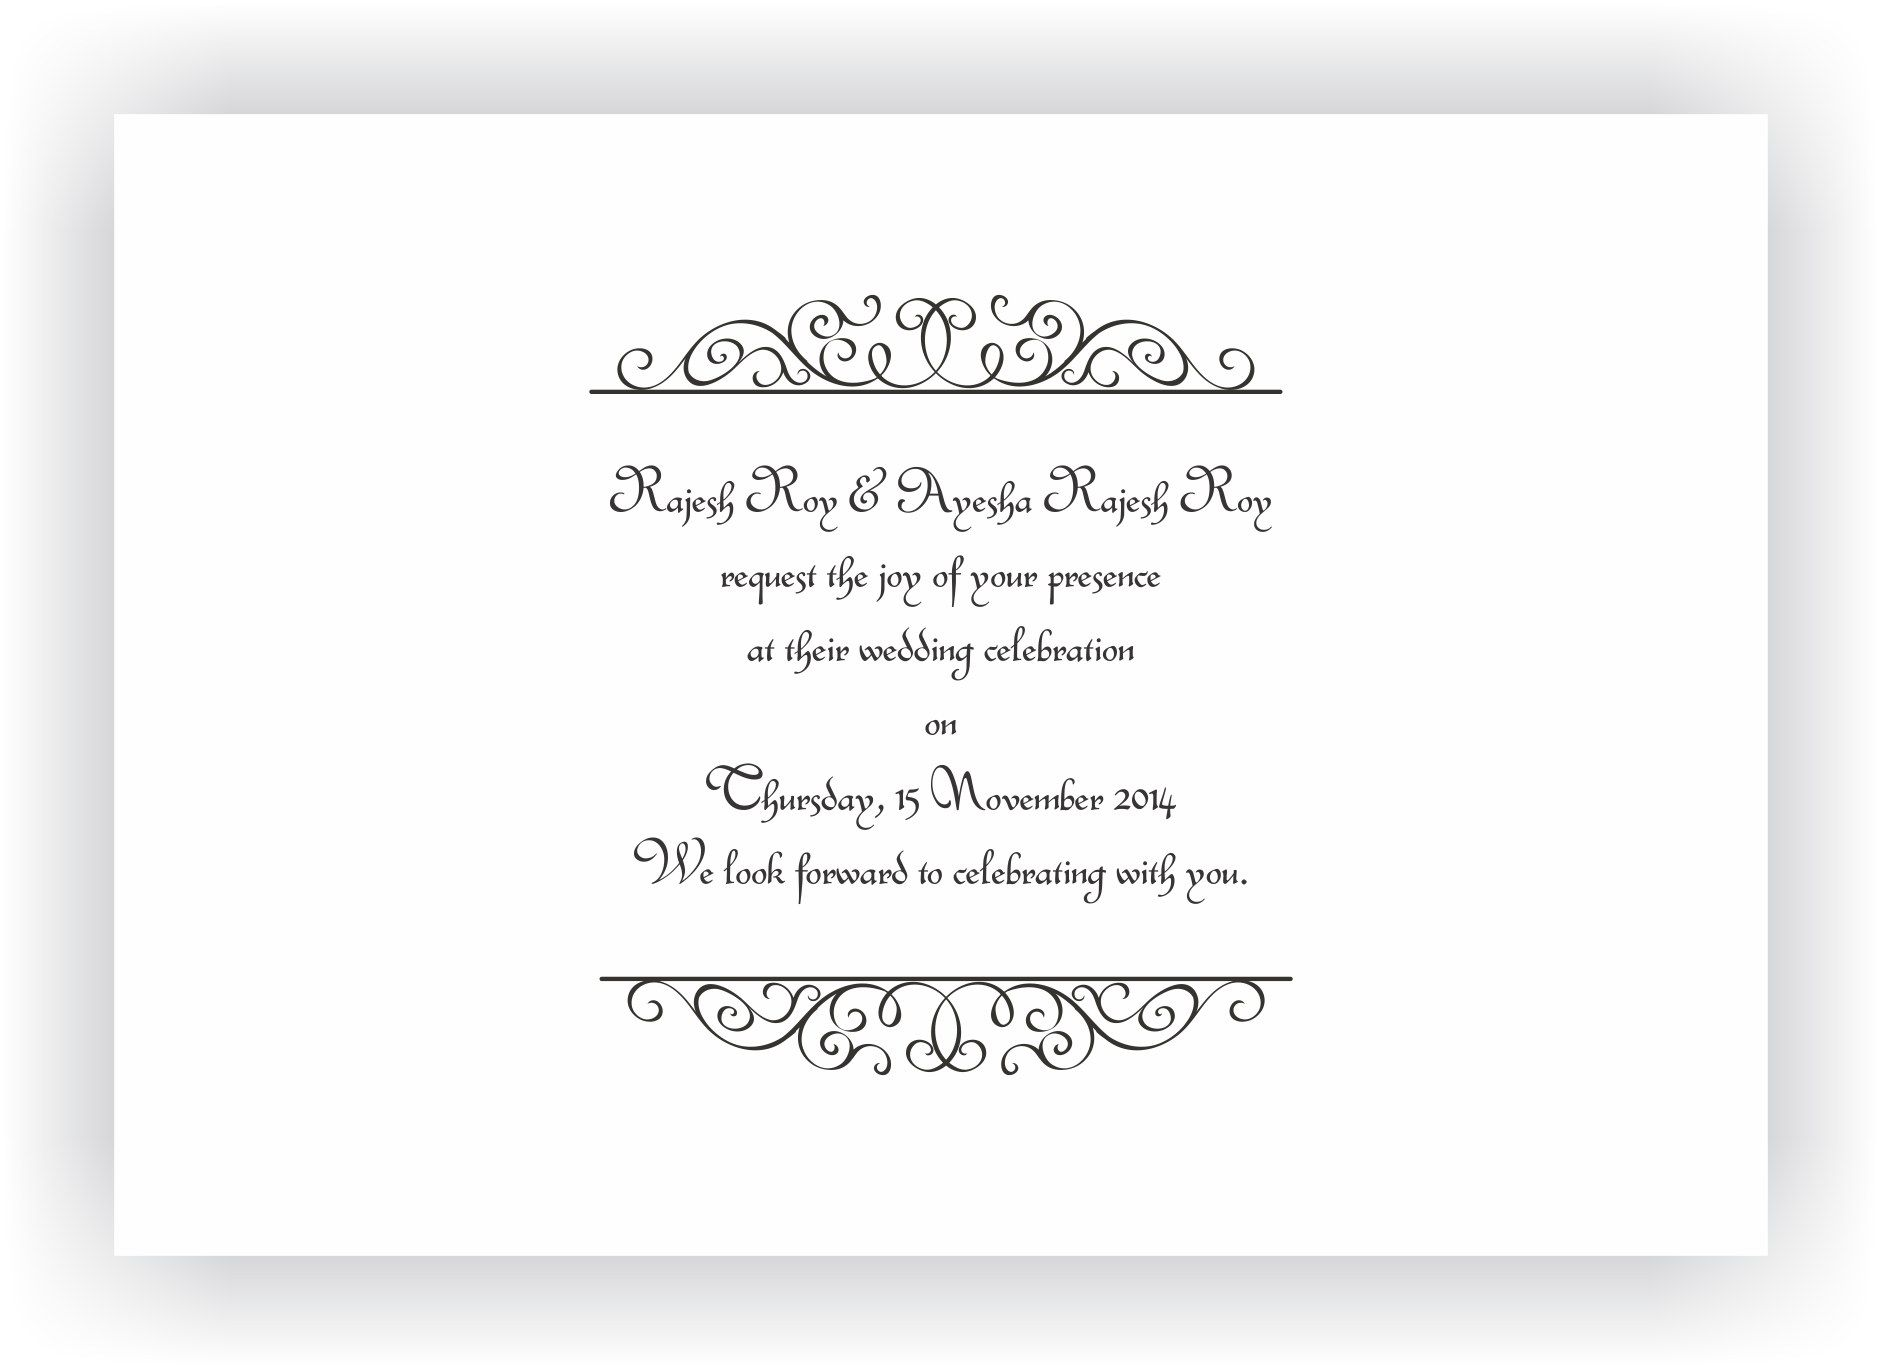 Wedding Invitation Sms Samples Images Invitation Sample And